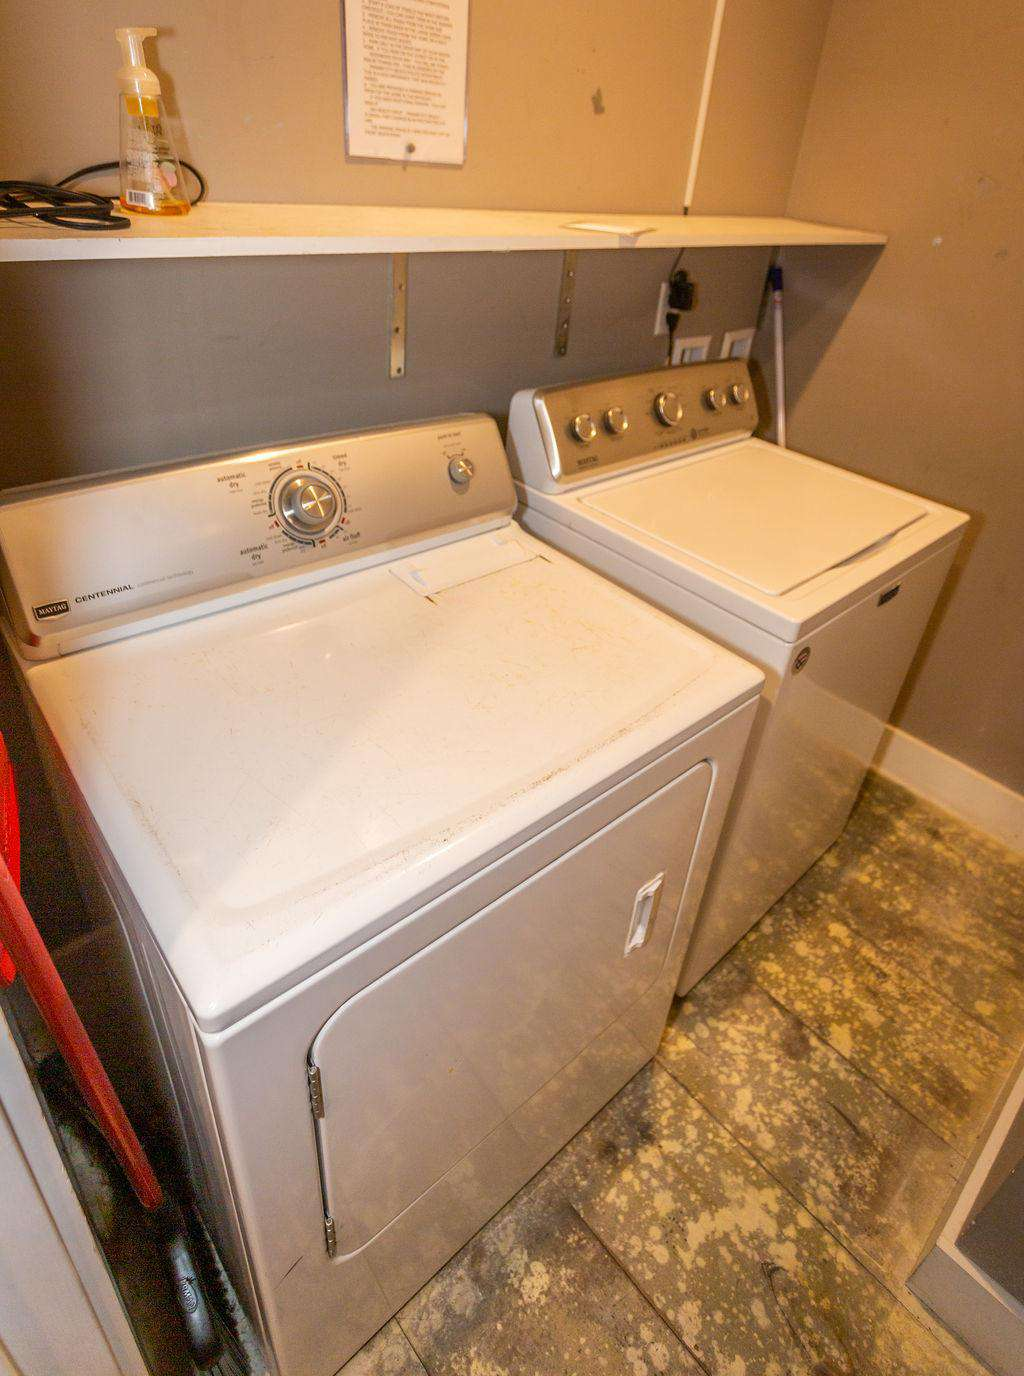 Full size maytag washer and dryer